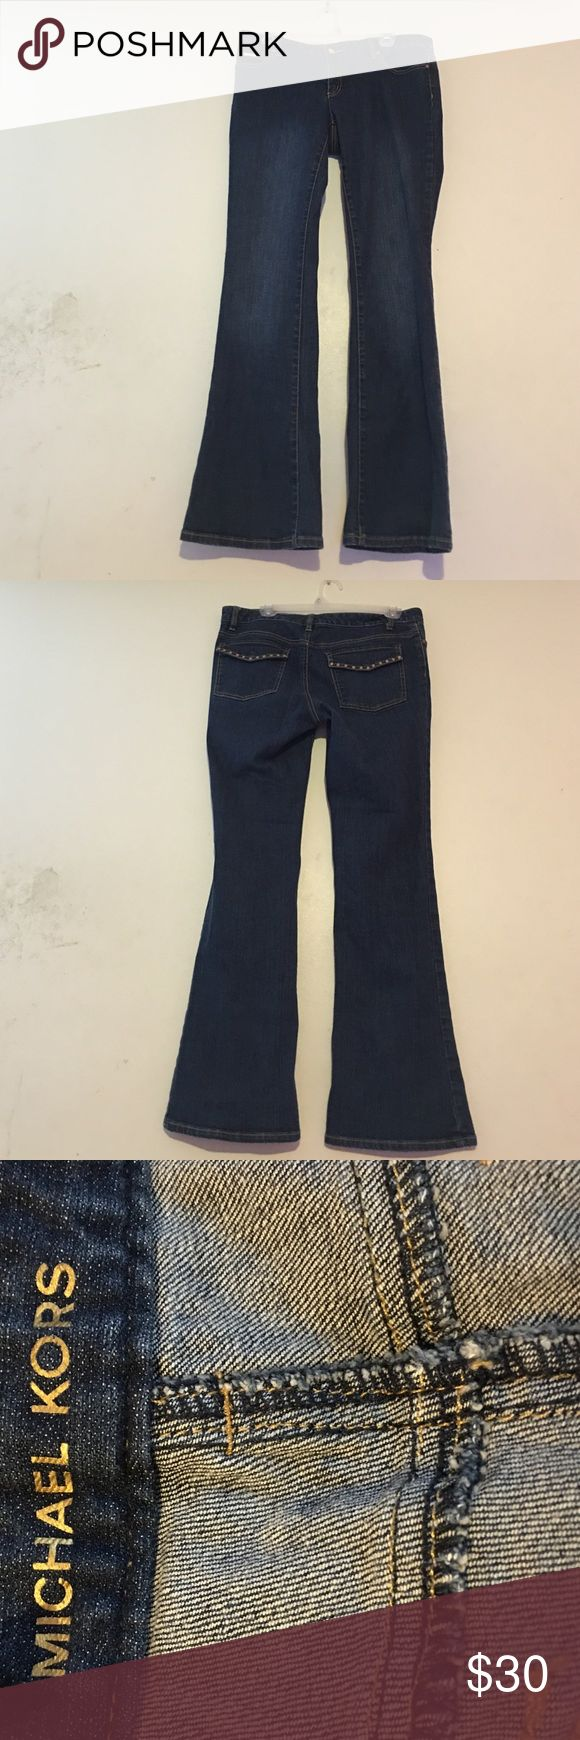 1 DAY SALE FIRM PRICE Michael kors size 8 jeans Stylish jeans with gorgeous design Michael Kors Jeans